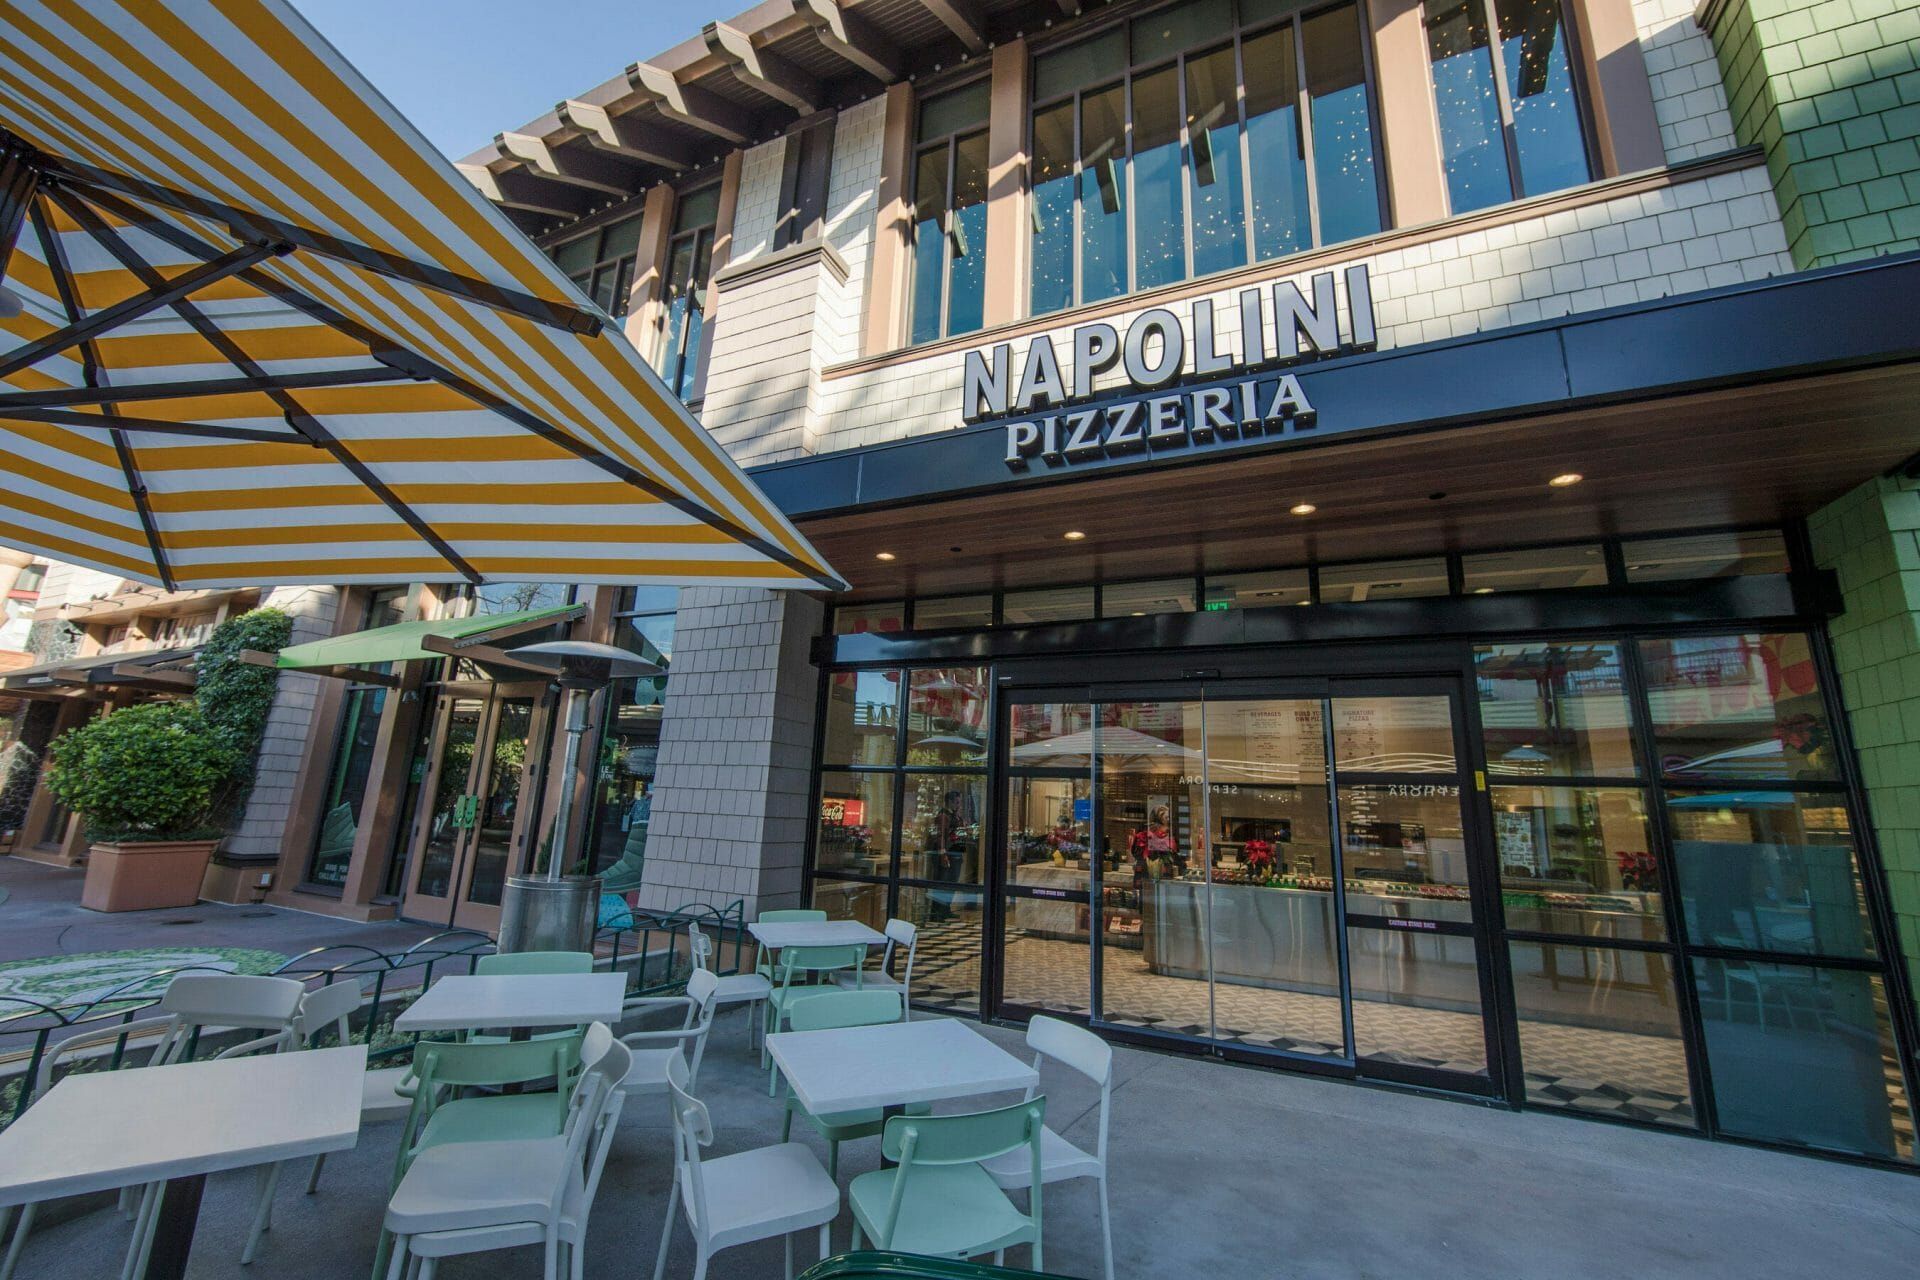 Napolini Pizzeria in Downtown Disney District at the Disneyland Resort